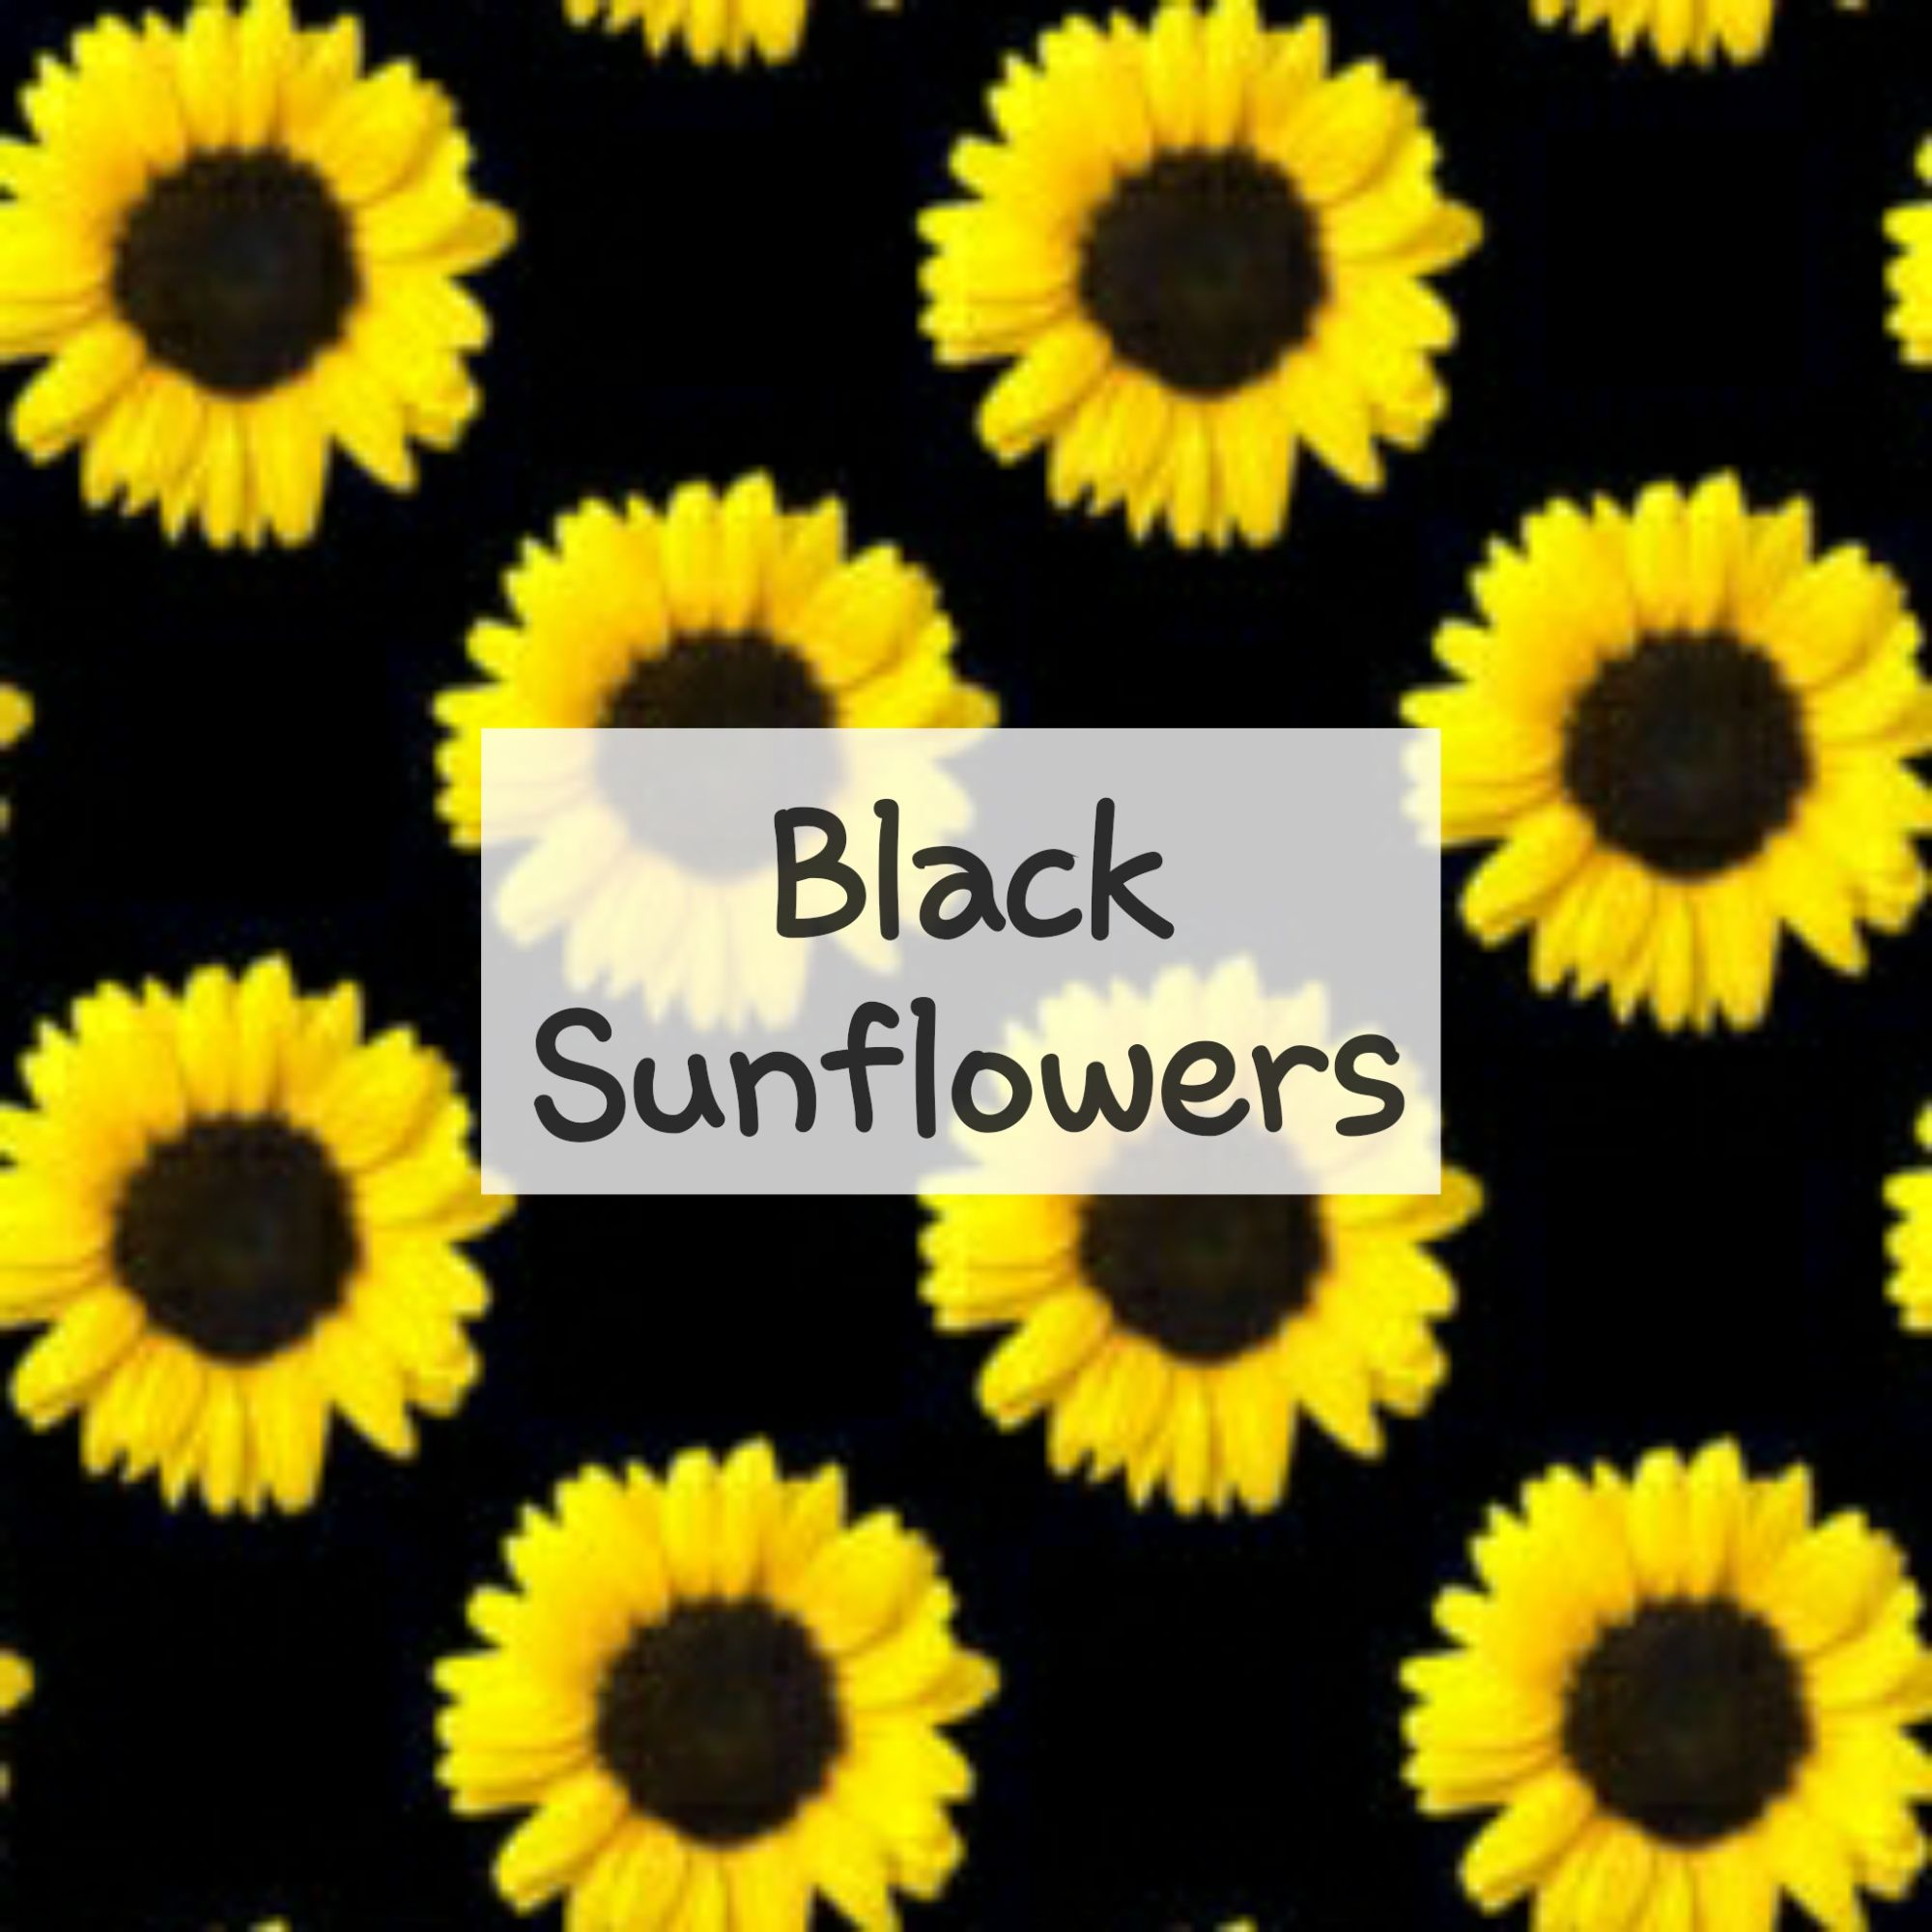 Black Sunflowers